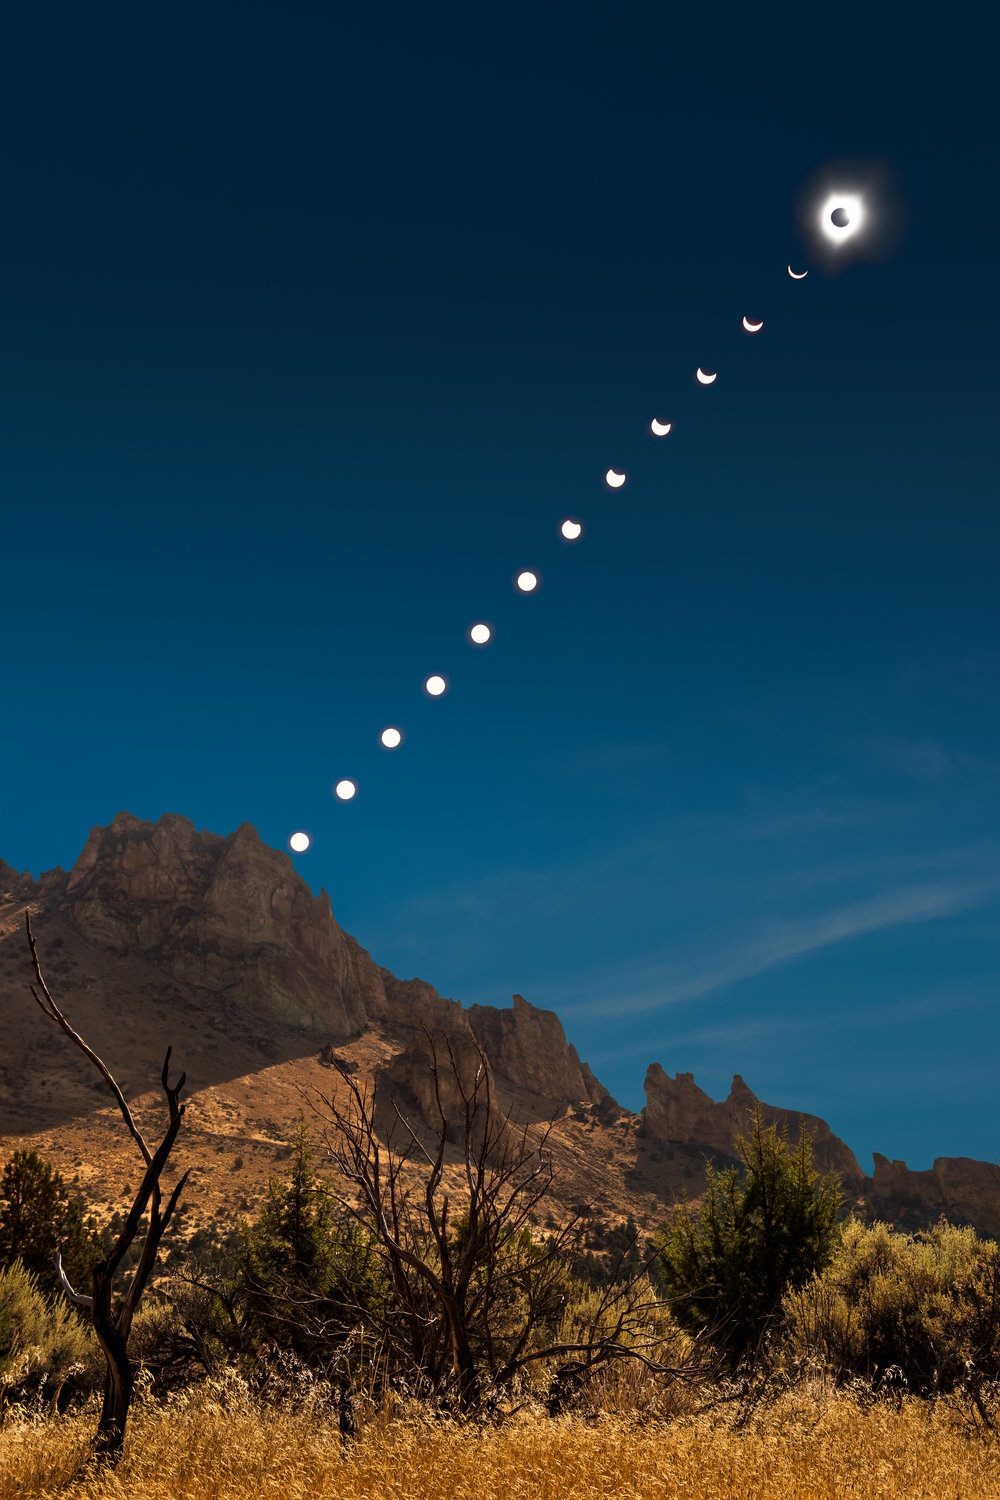 Solar Eclipse Progression | Smith Rock State Park | My wide-angle shot of the phenominon over Smith Rock State Park.  This image is a composite of 27 images - 13 focus stacked images of the foreground, 13 frames of the sun, and an additional image of the sky.